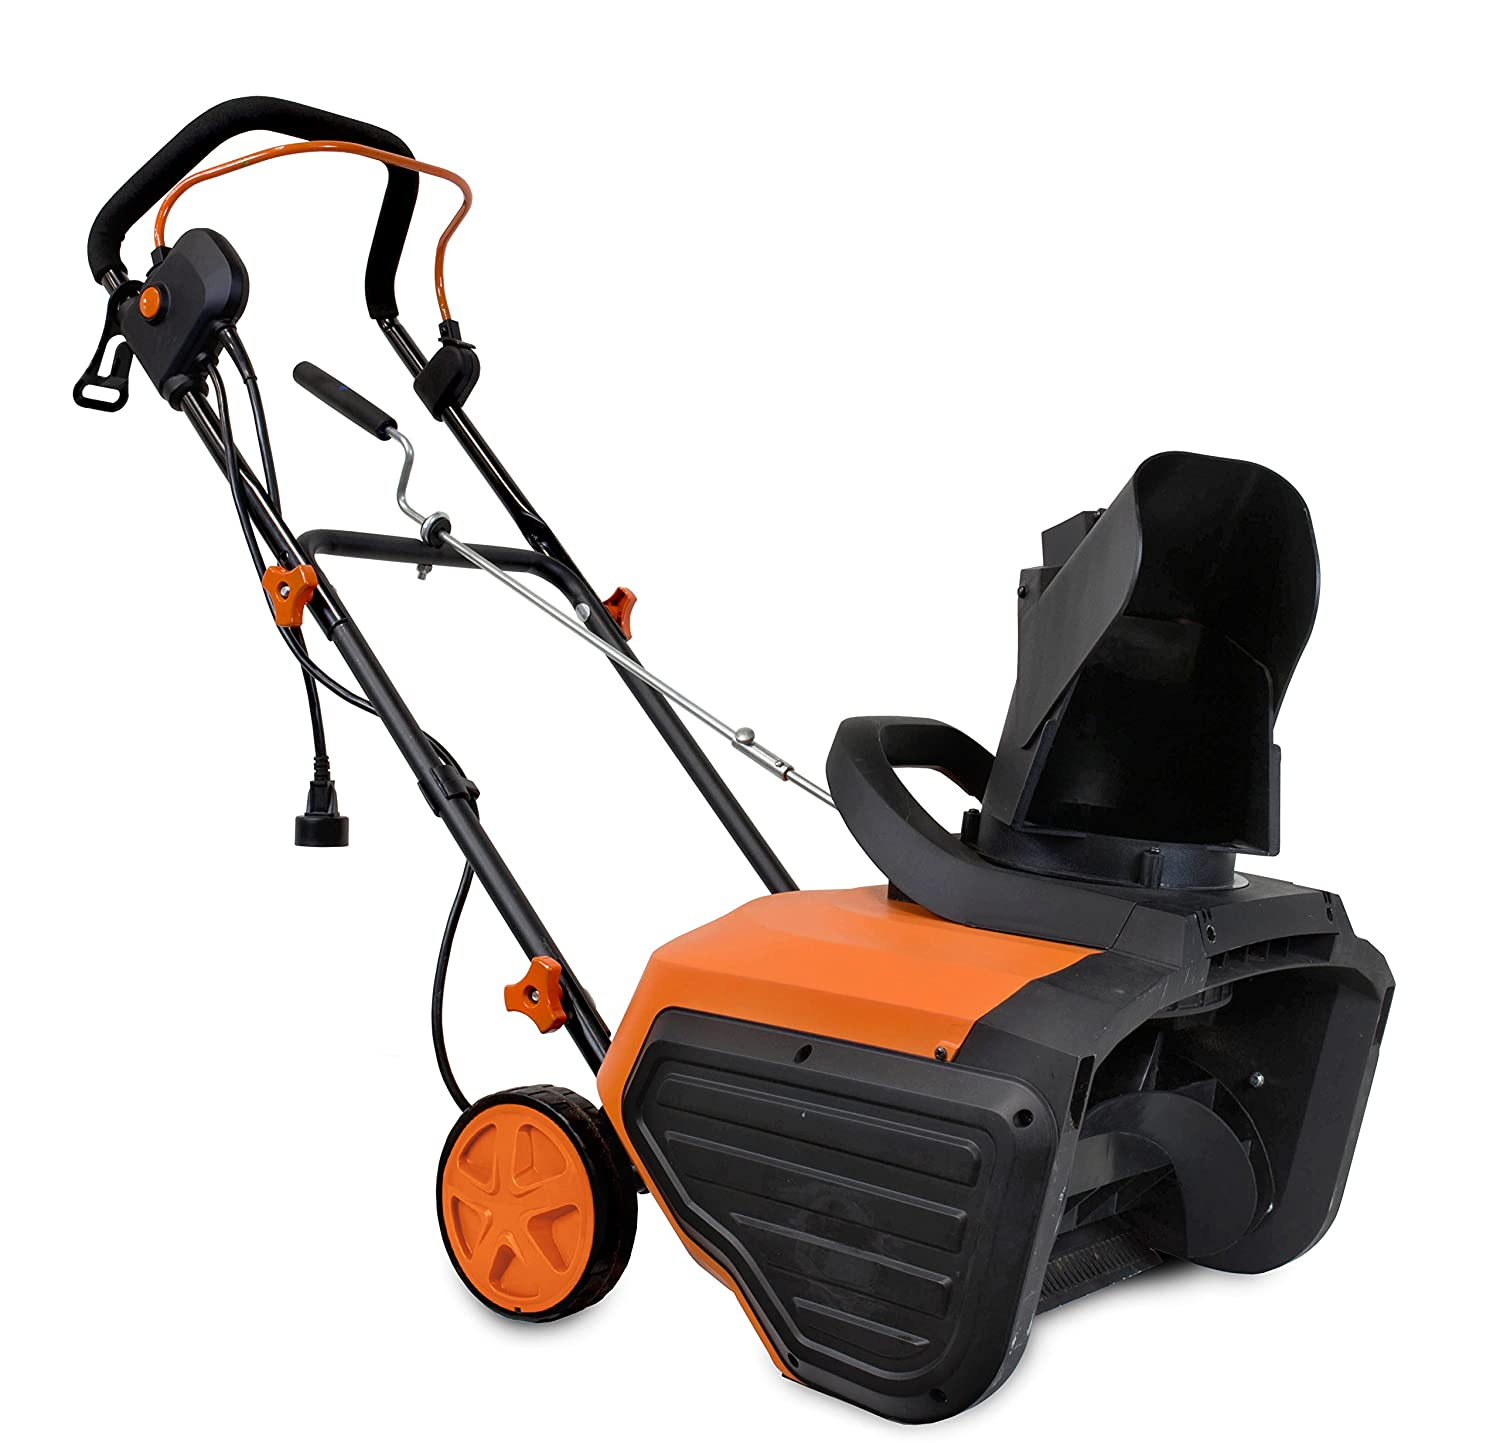 Best Snow Blower Reviews and Buying Guide 1